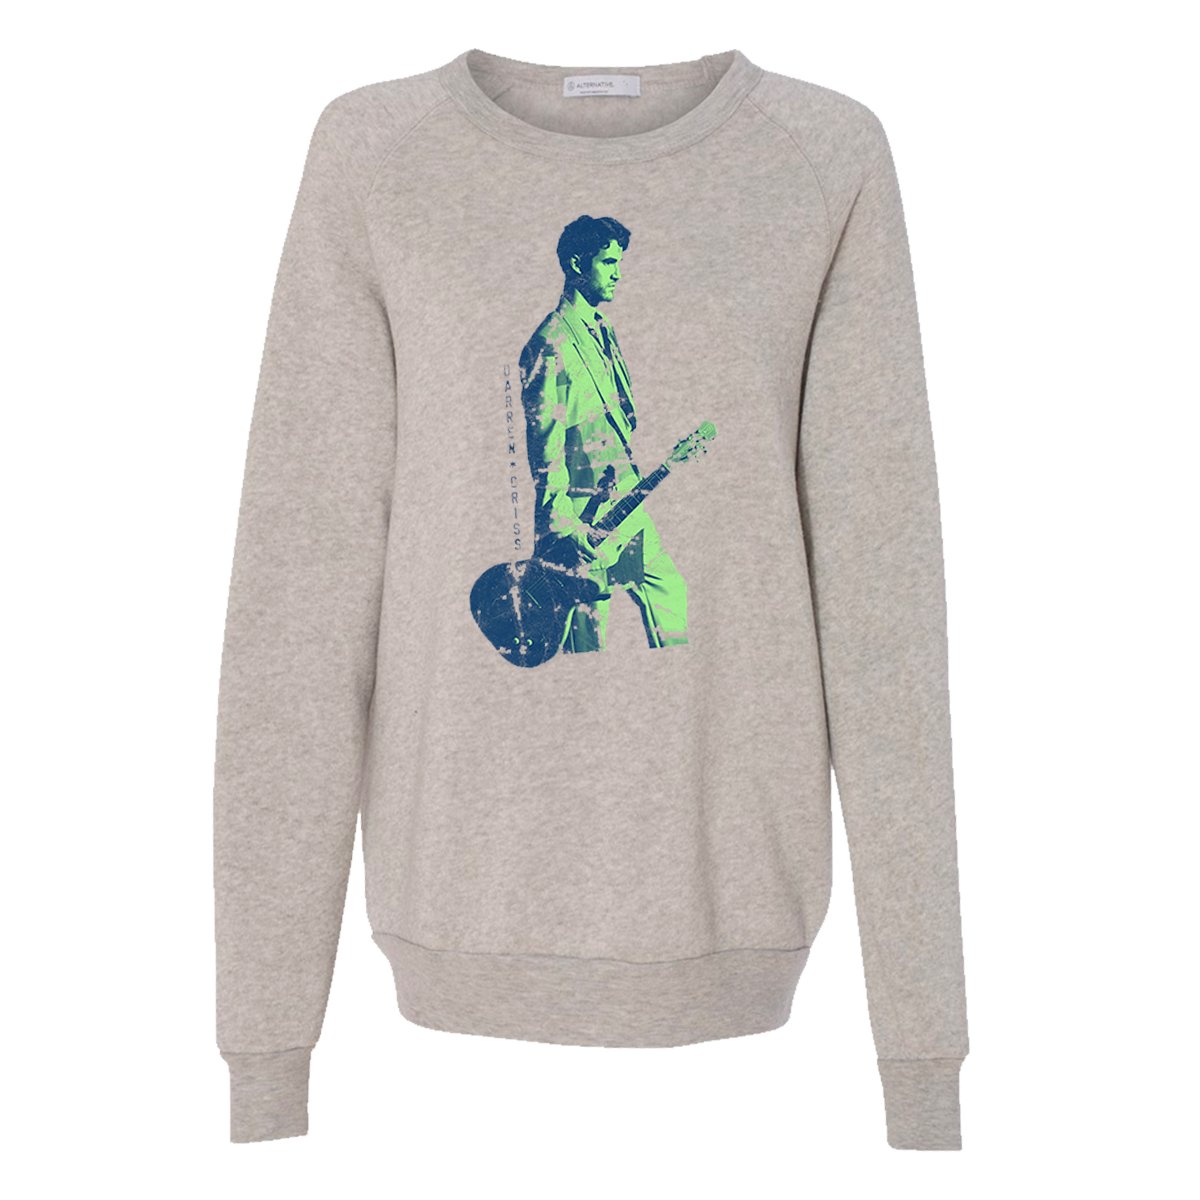 F*KN AROUND - Guitar Pullover Sweashirt